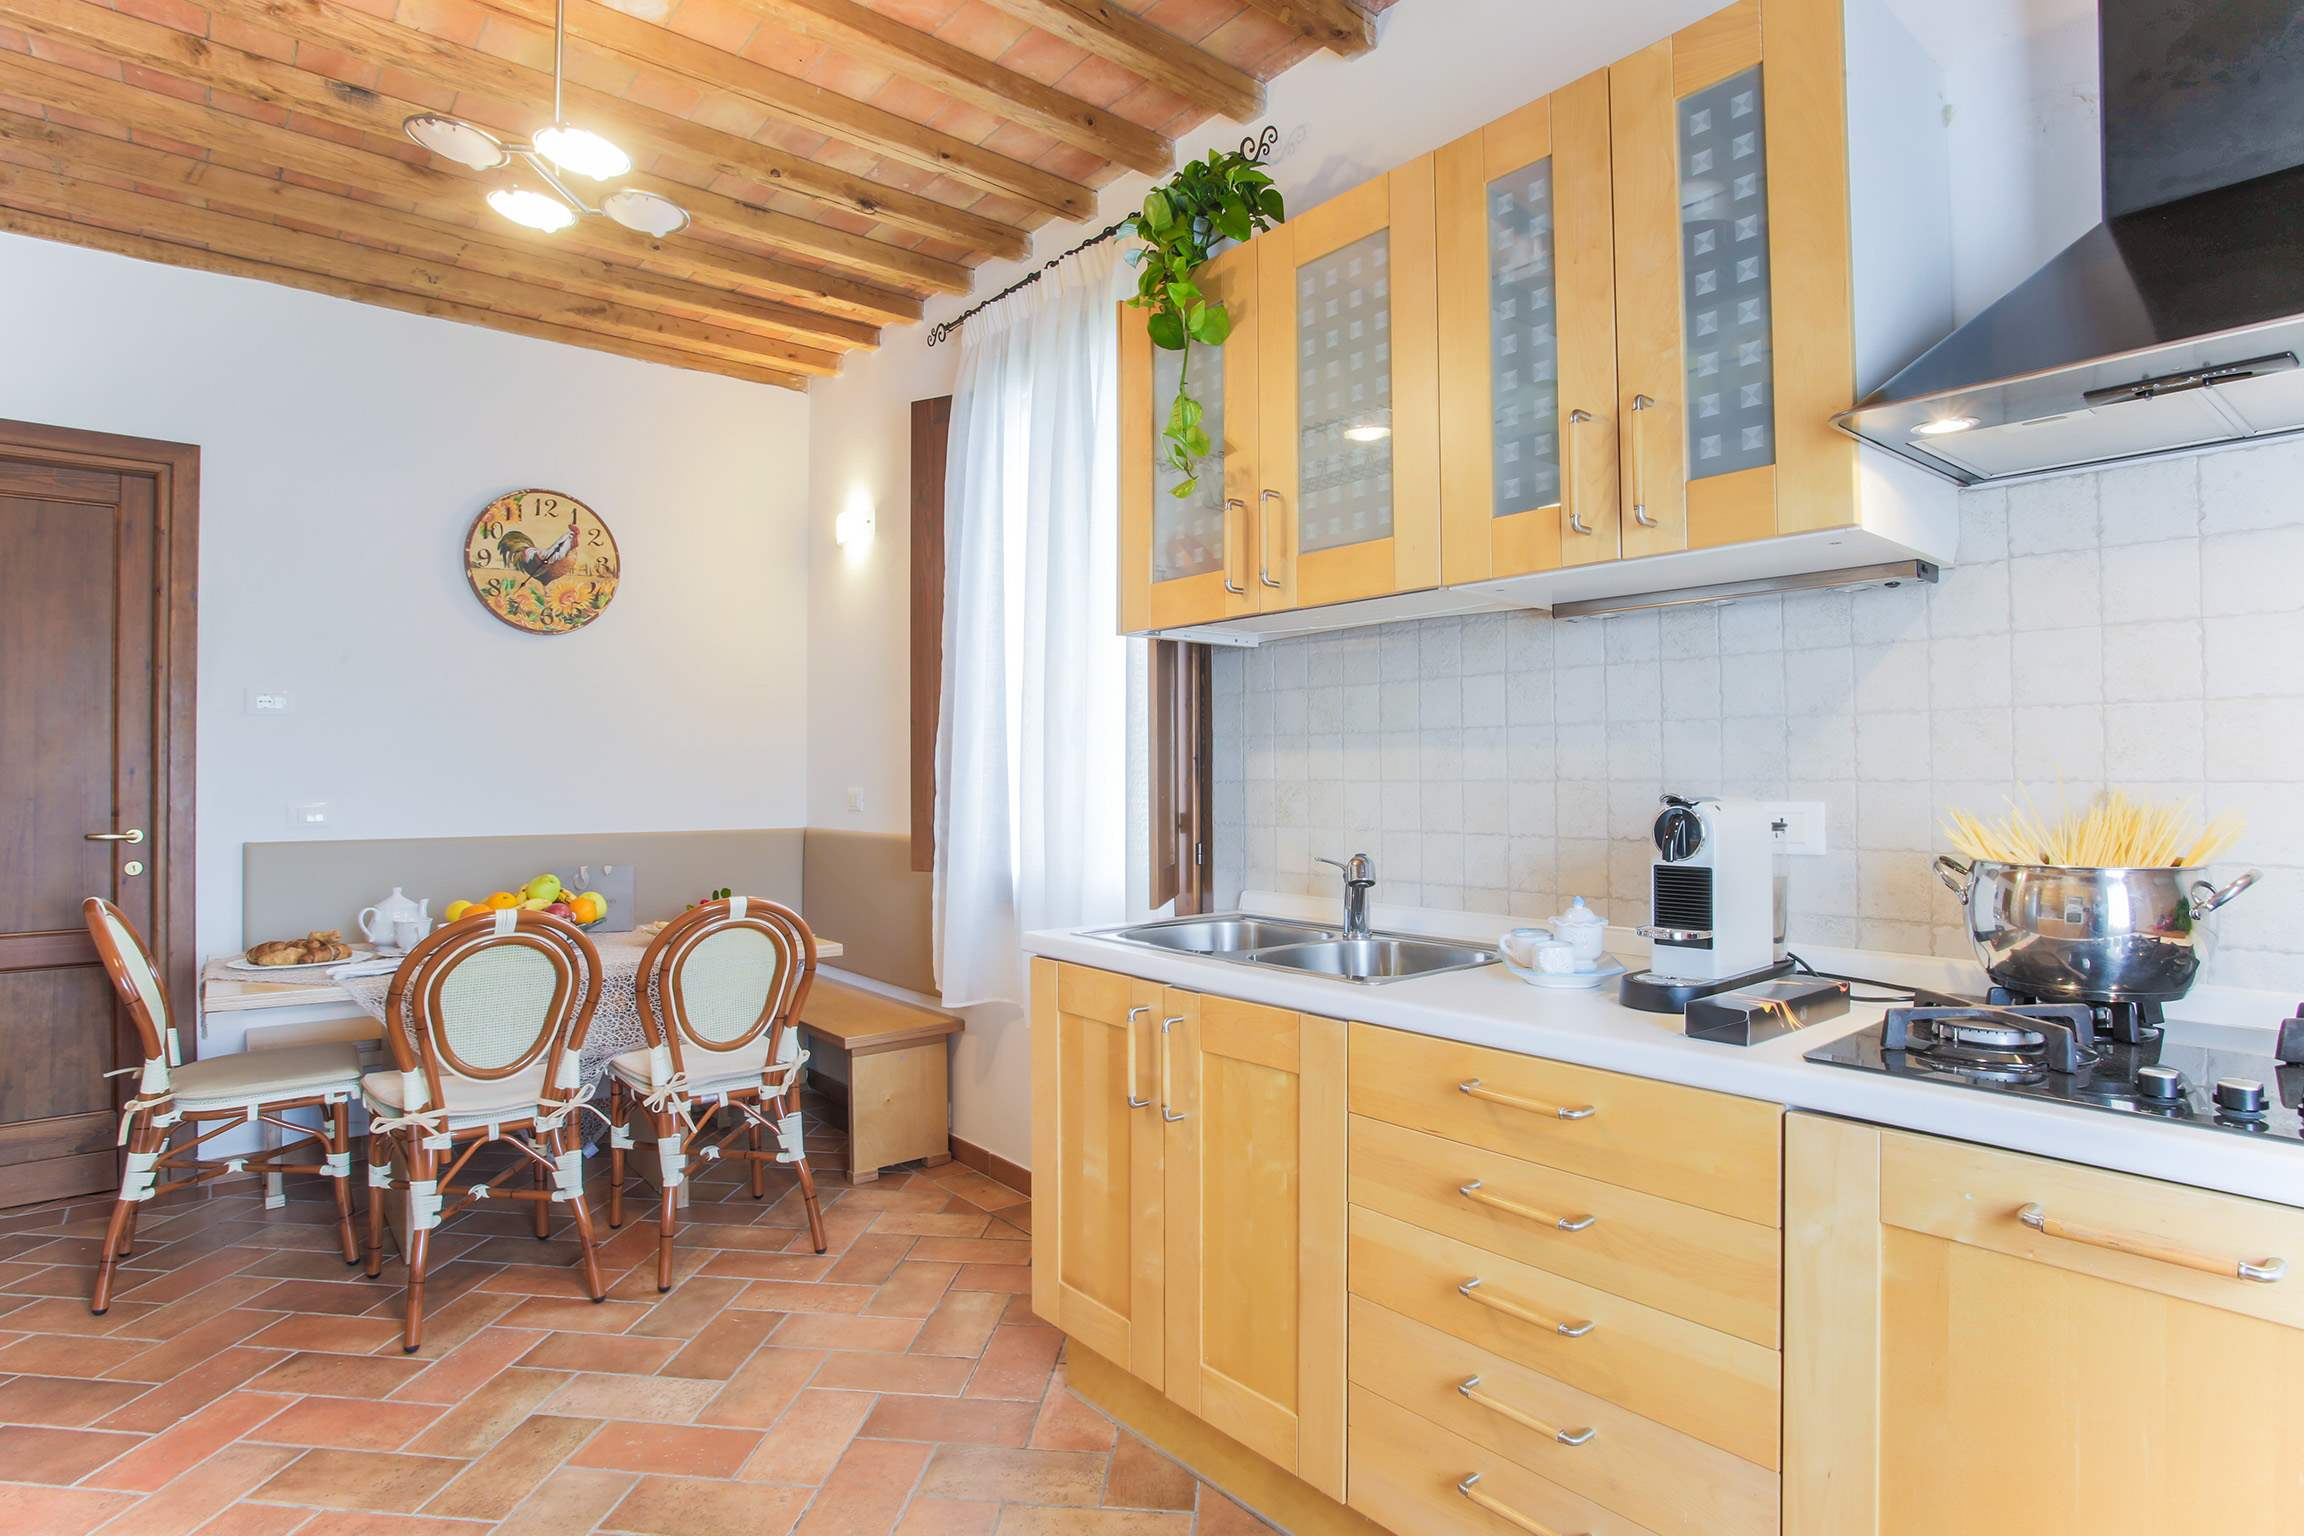 Casa Di Dante, 3 bedroom villa in North Tuscany - Pisa & Lucca Area, Tuscany Photo #14